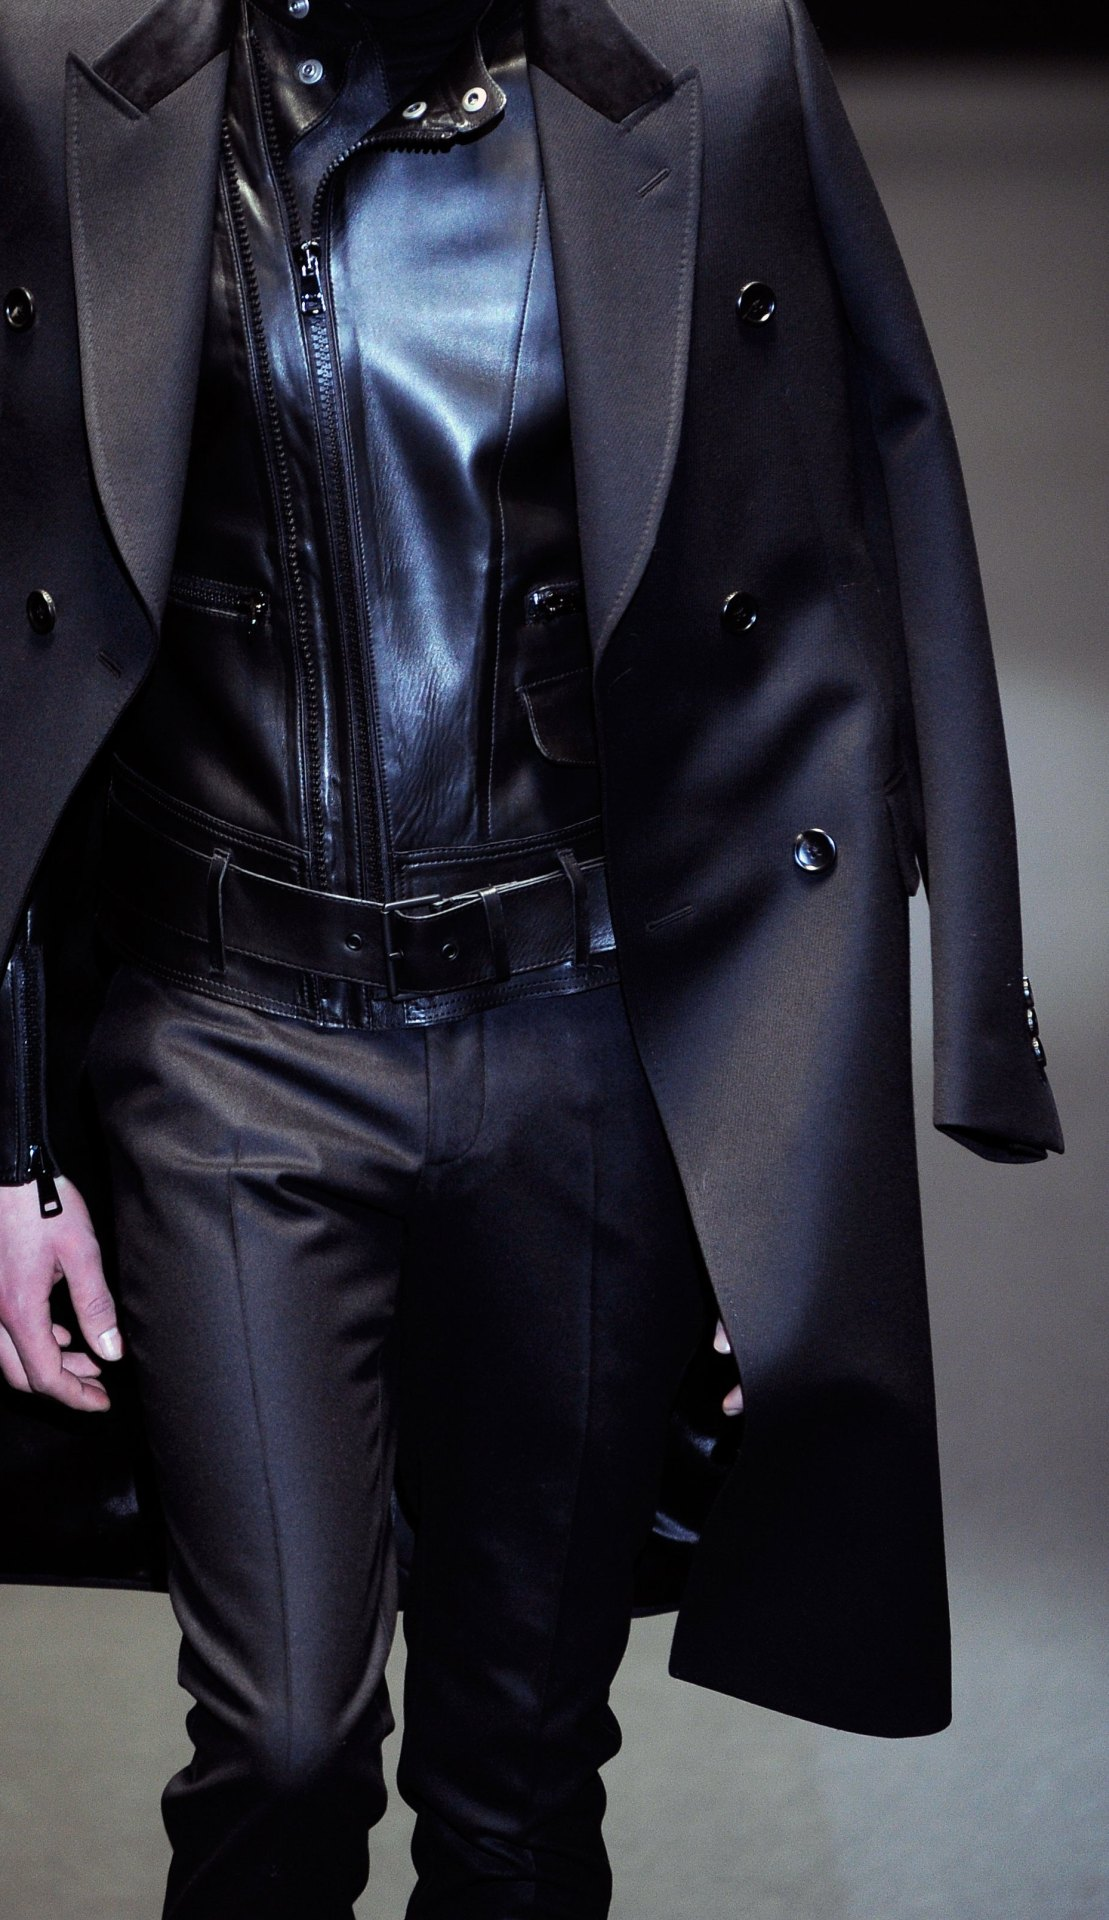 wgsn:  Sharp #tailored looks were paired with smooth glossy #leather at the @Gucci #AW13 #menswear show. Subscribers can read our full report on the show here.  Gucci X Leather